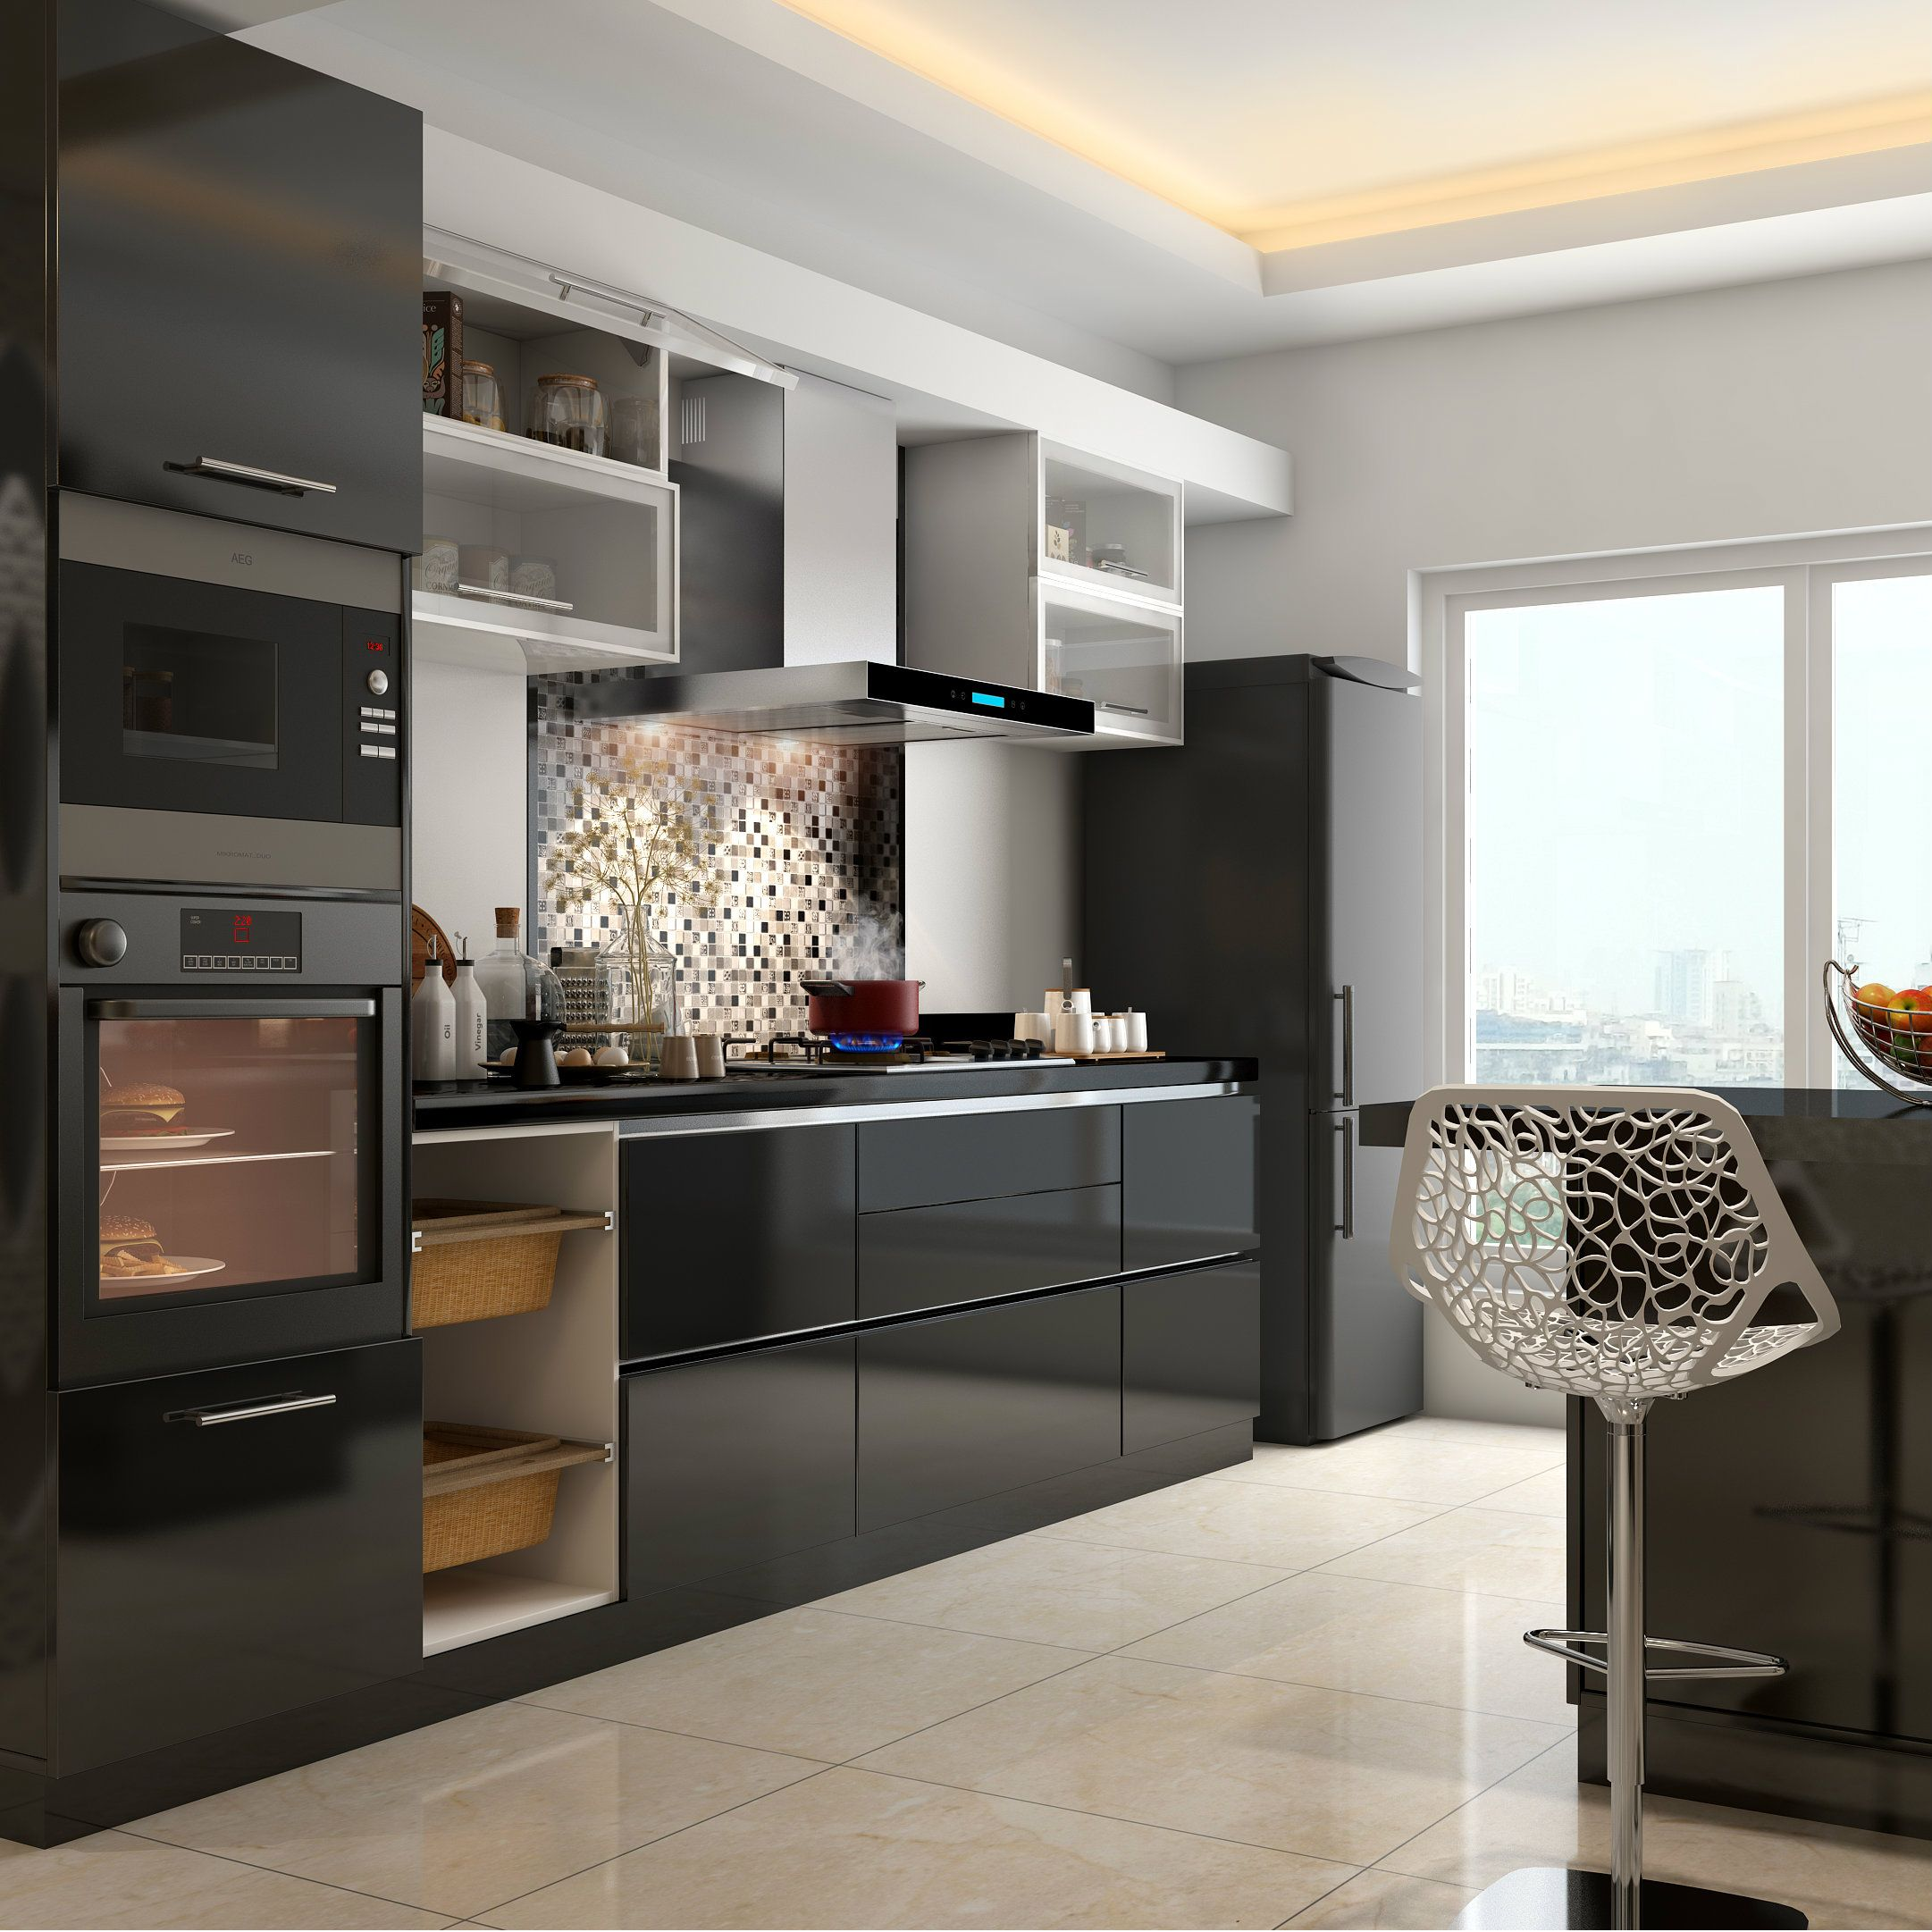 Black Design For Kitchen A Sleek Black Modular Kitchen With Built In Appliances Modular